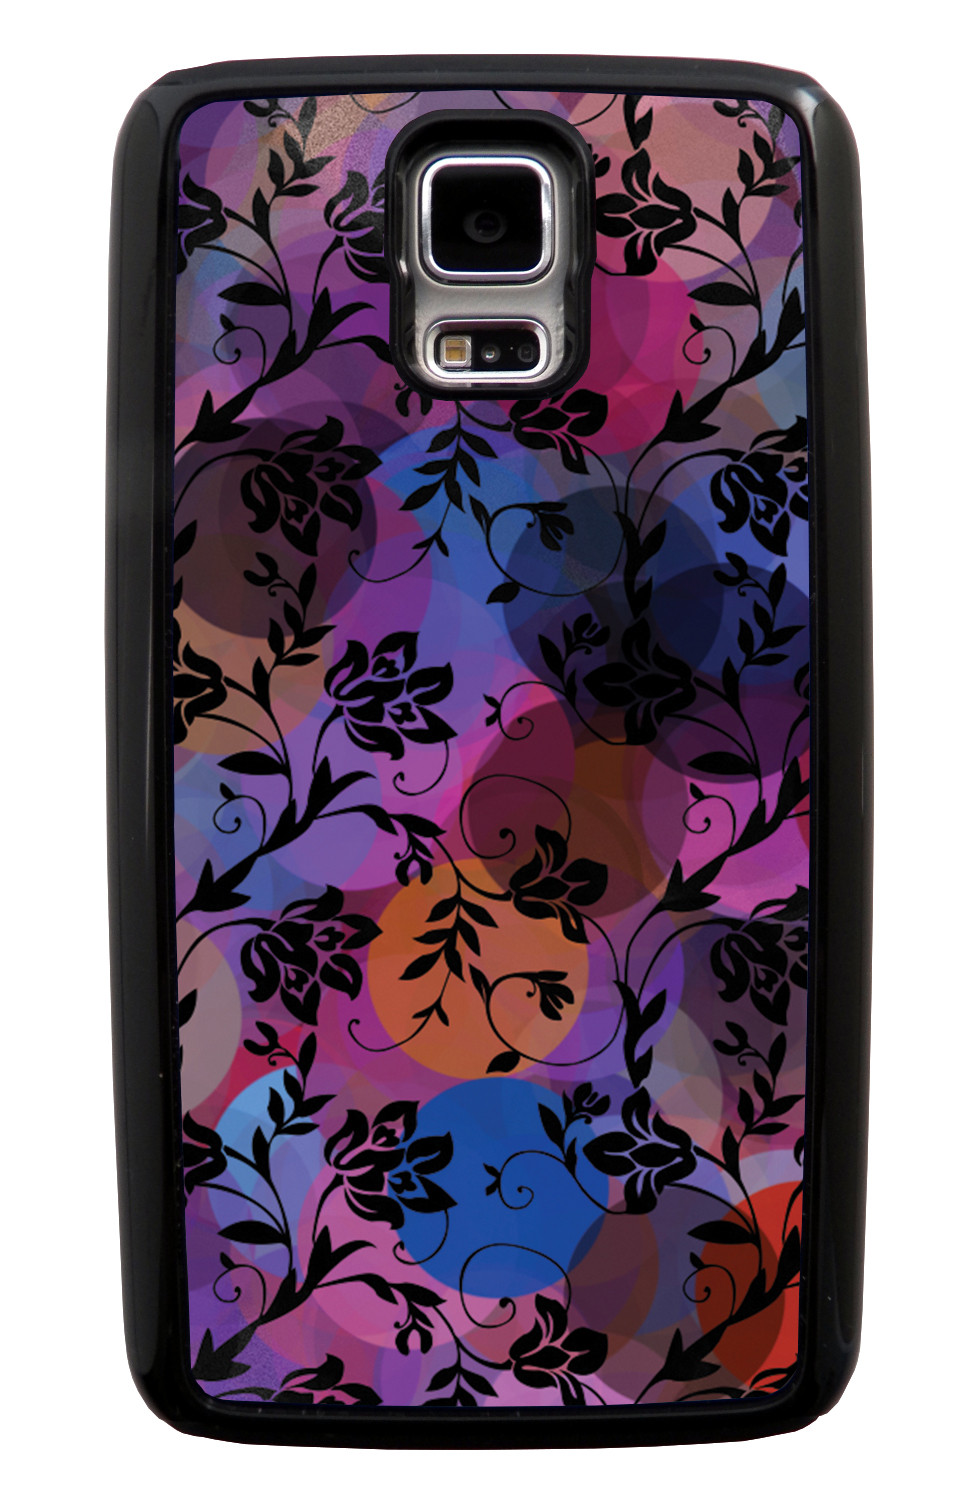 Samsung Galaxy S5 / SV Flower Case - Black on Out-of-Focus Night Lights - Stencil Cutout - Black Tough Hybrid Case